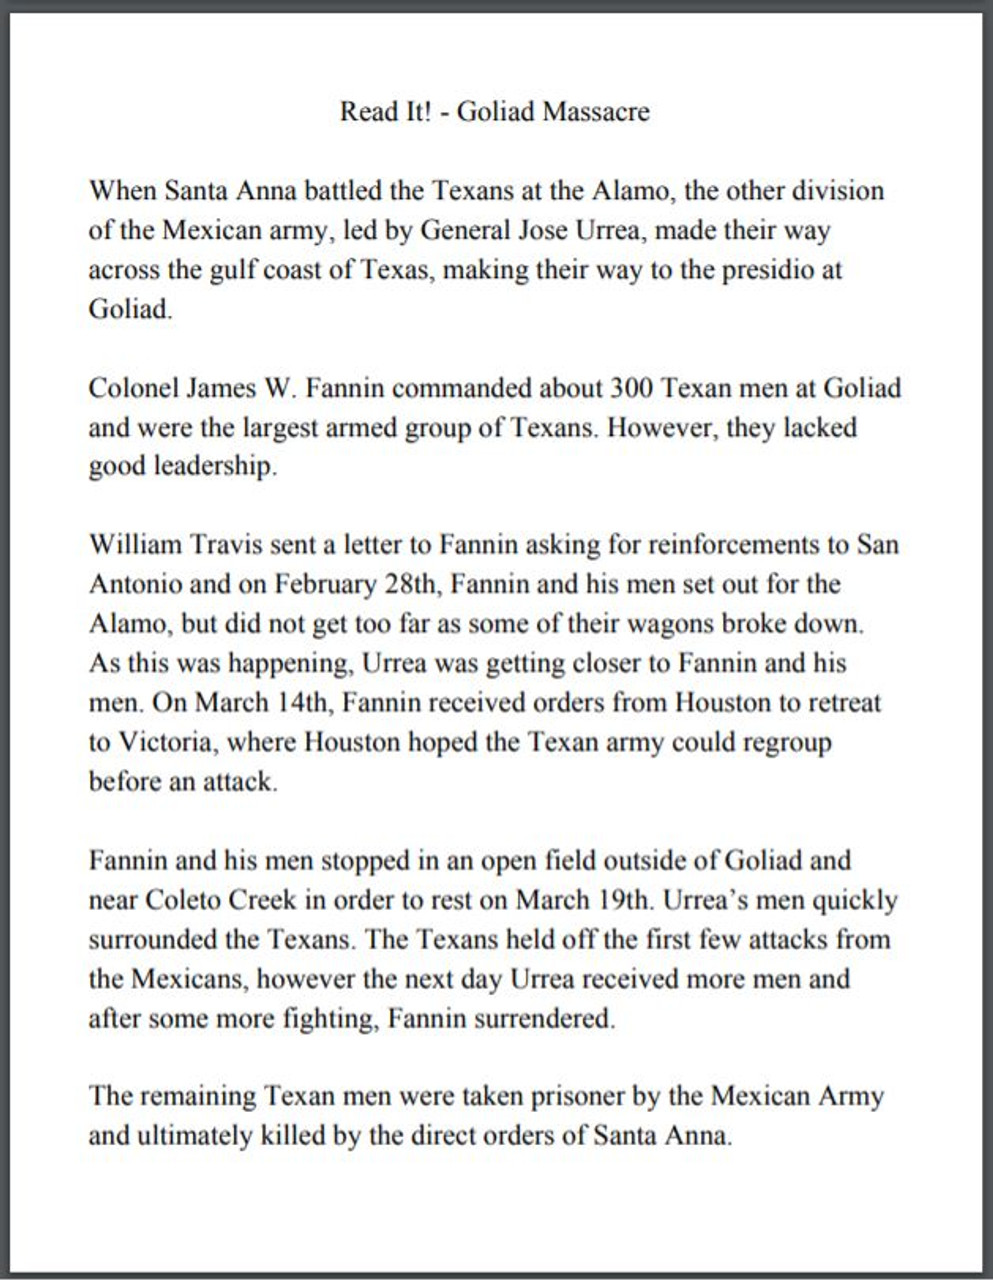 Goliad Massacre, Battle of San Jacinto and Treaty of Velasco Stations/Centers